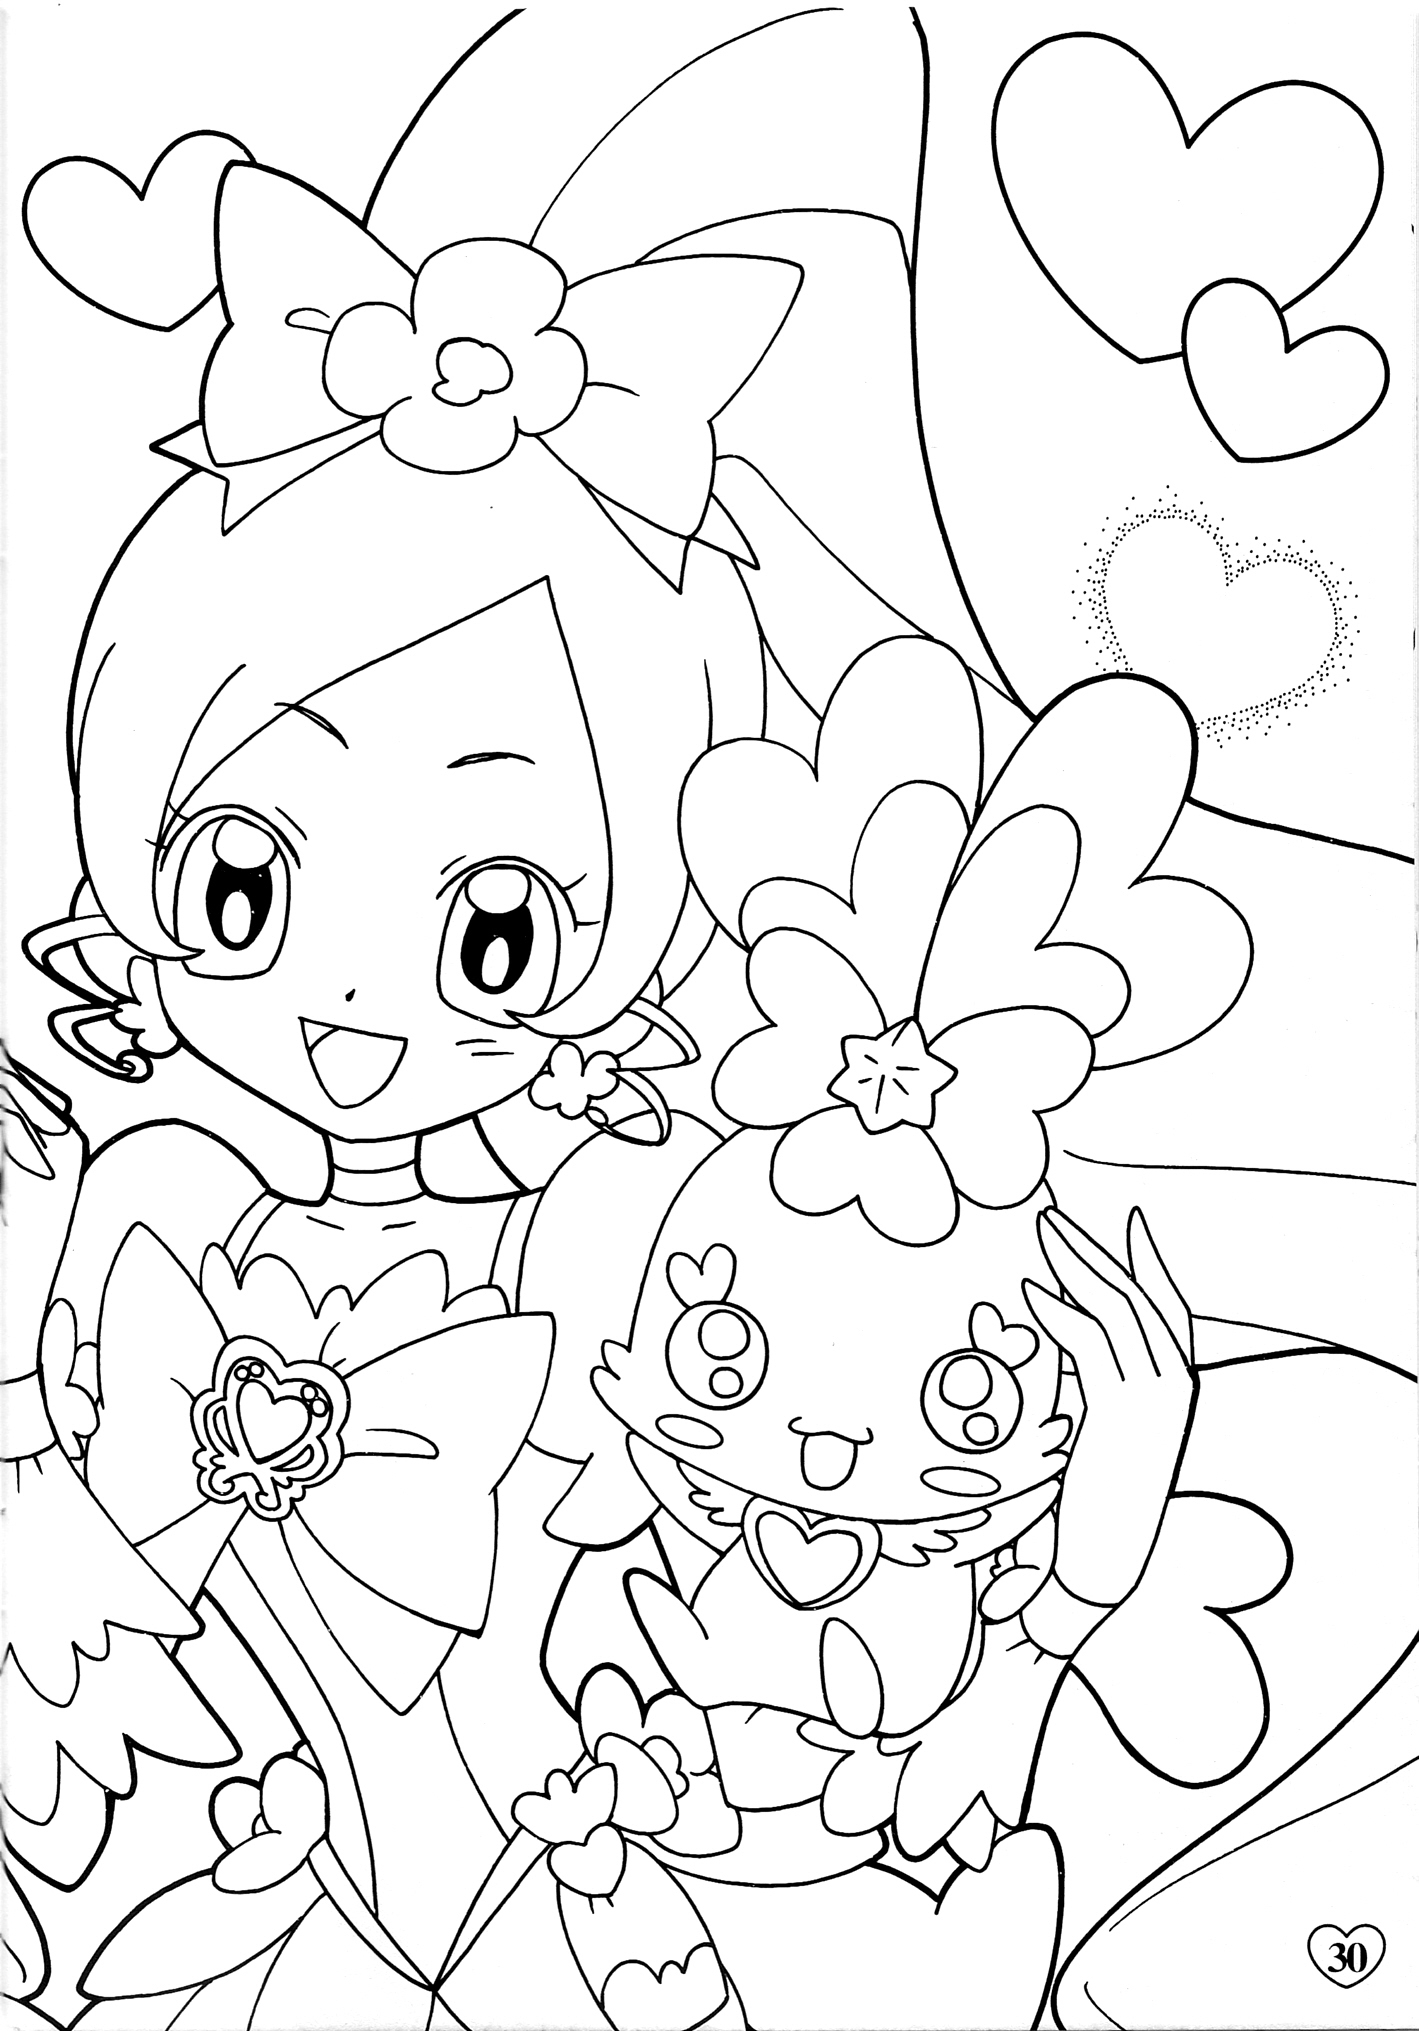 oasidelleanime precure coloring pages - photo #30